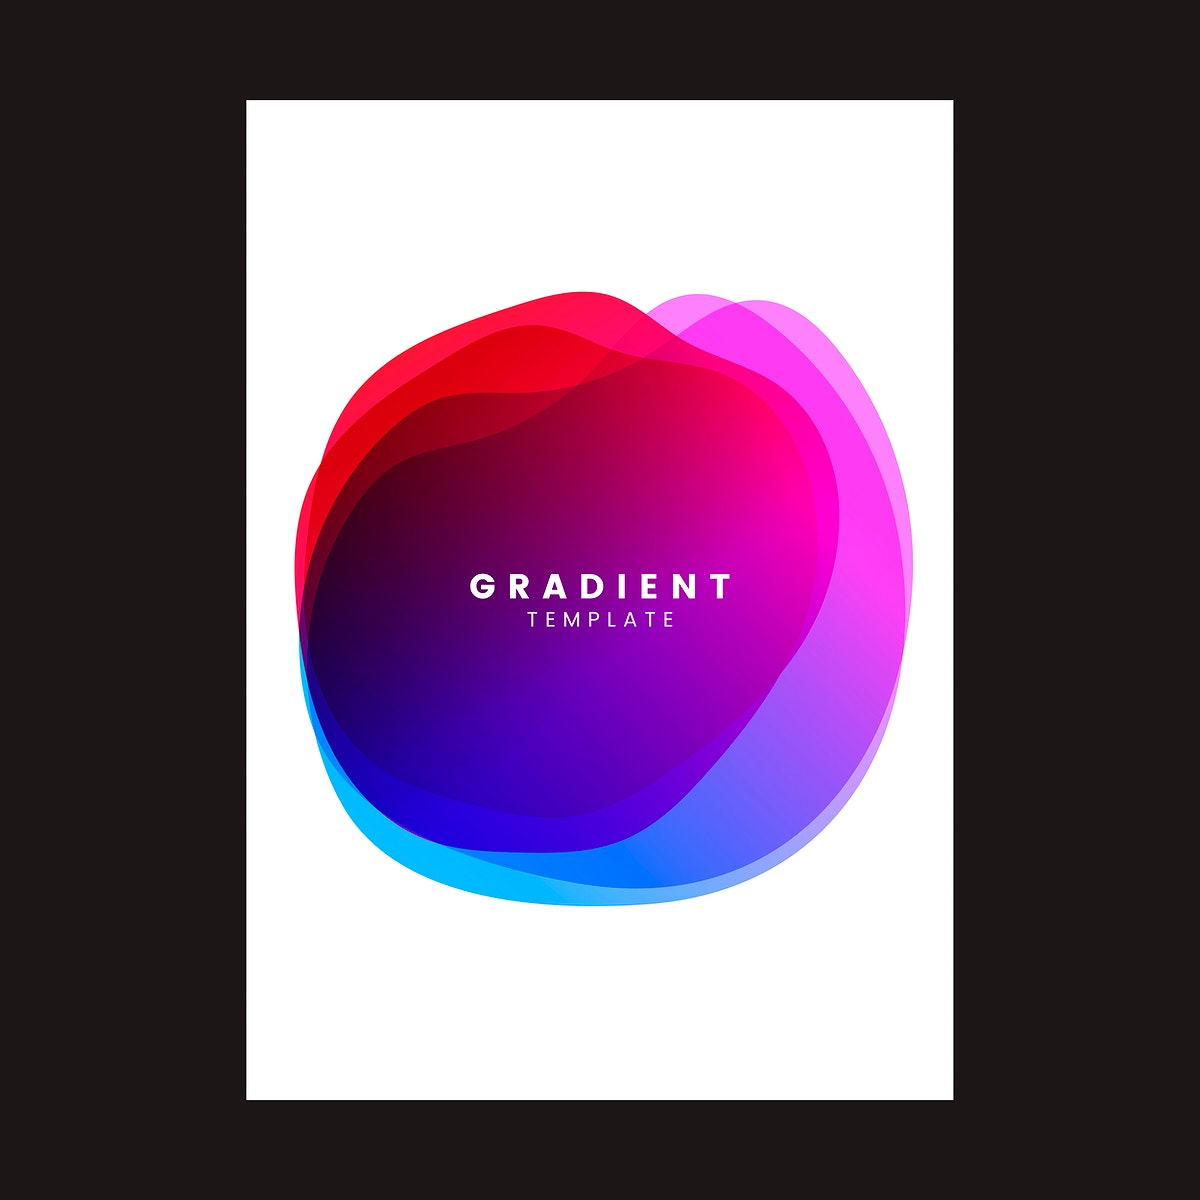 Colorful gradient template poster design